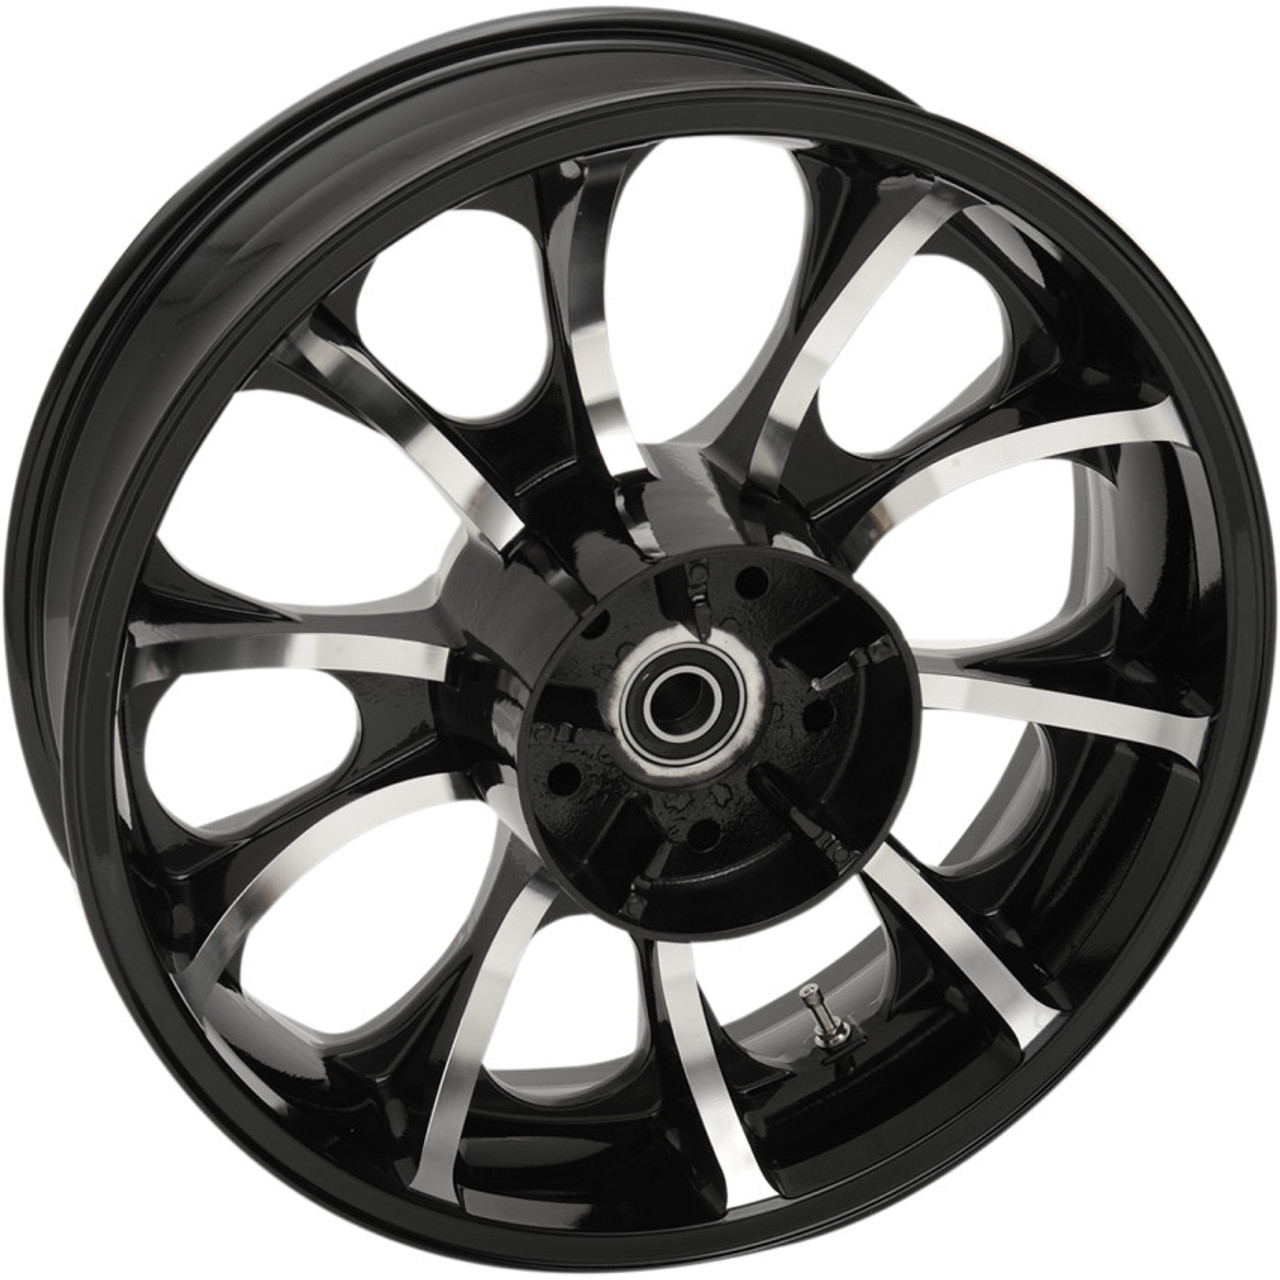 Coastal Moto Precision Cast 18 X 5 5 Largo 3d Rear Wheel For 2009